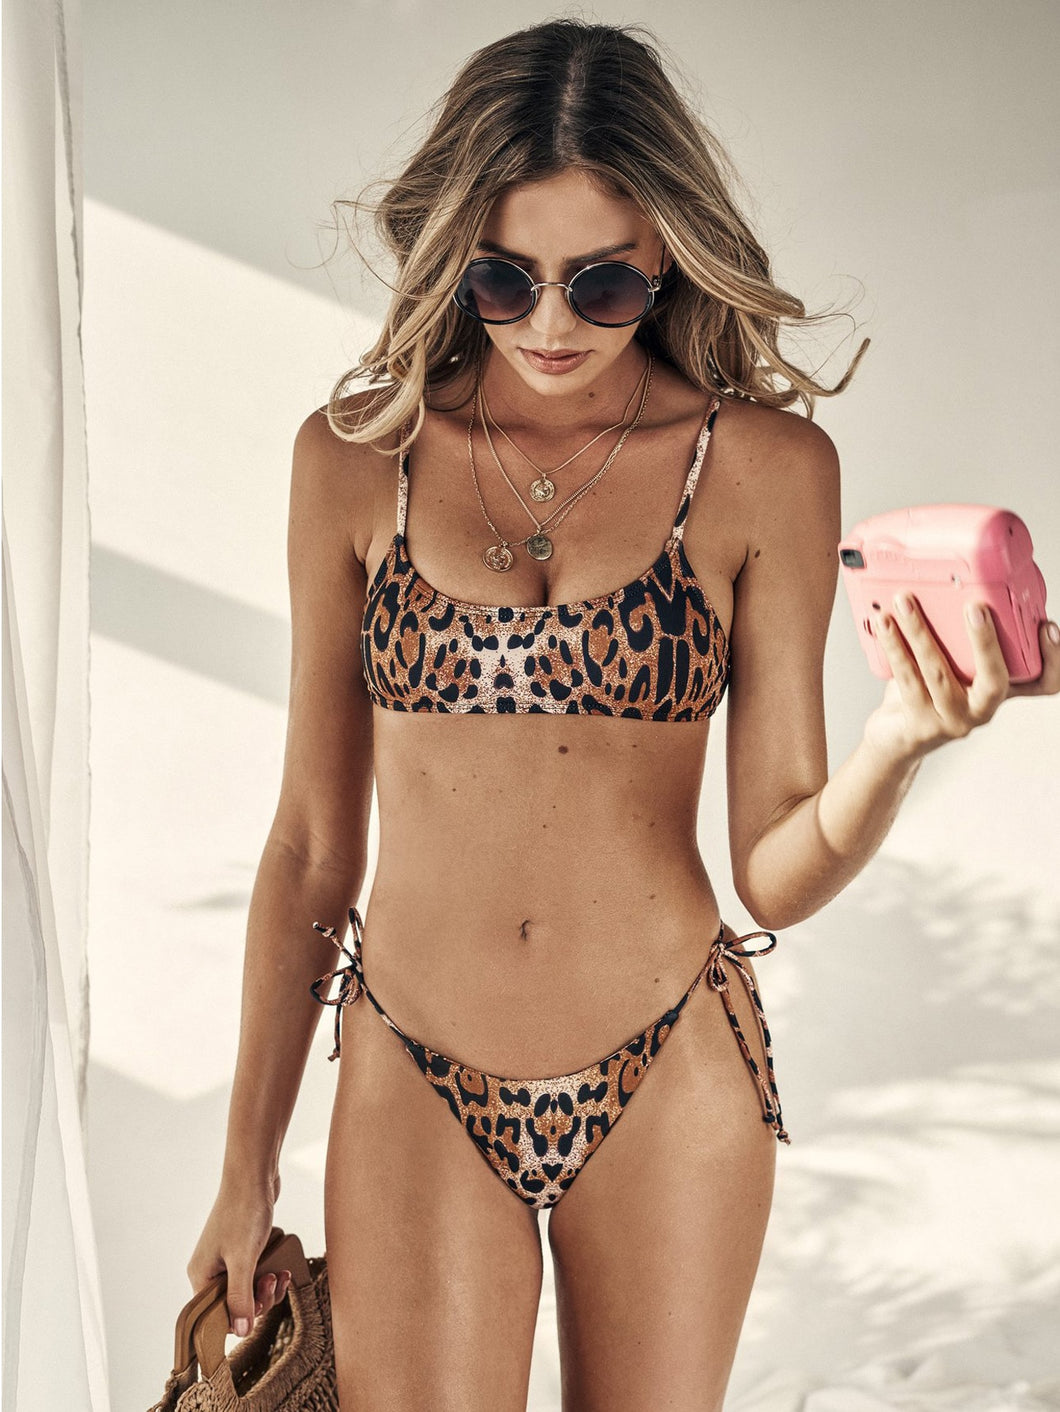 SPAGHETTI STRAP TOP WITH TIE SIDE BIKINI